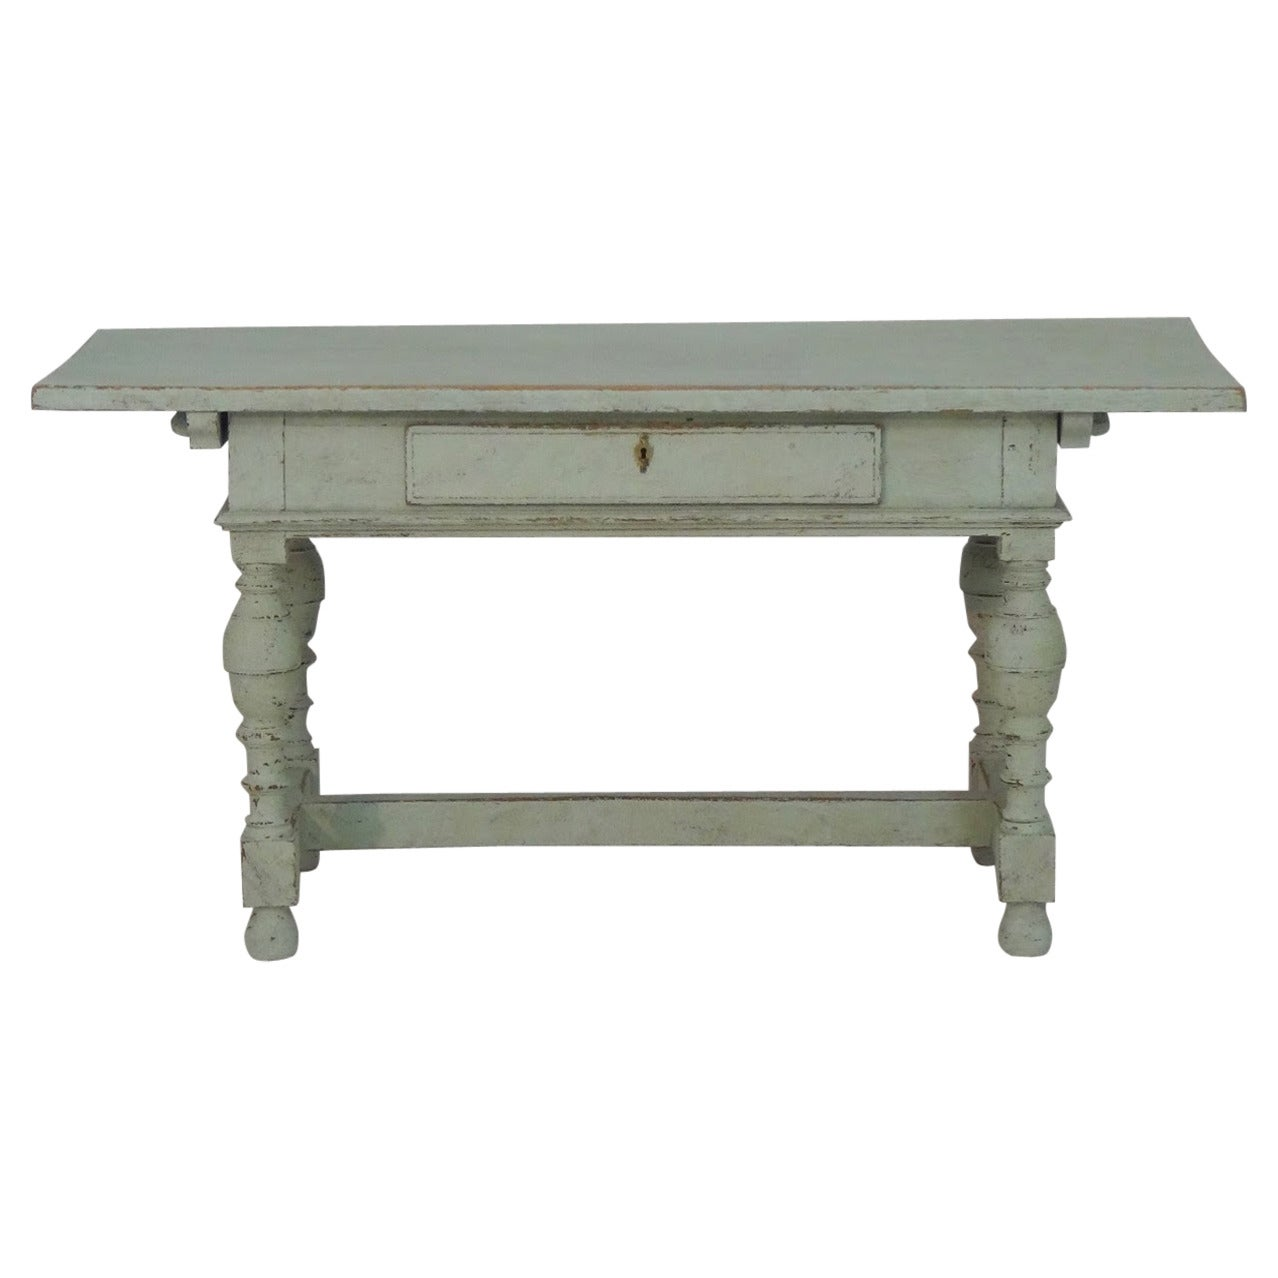 19th century swedish baroque style center table at 1stdibs for Table th center text